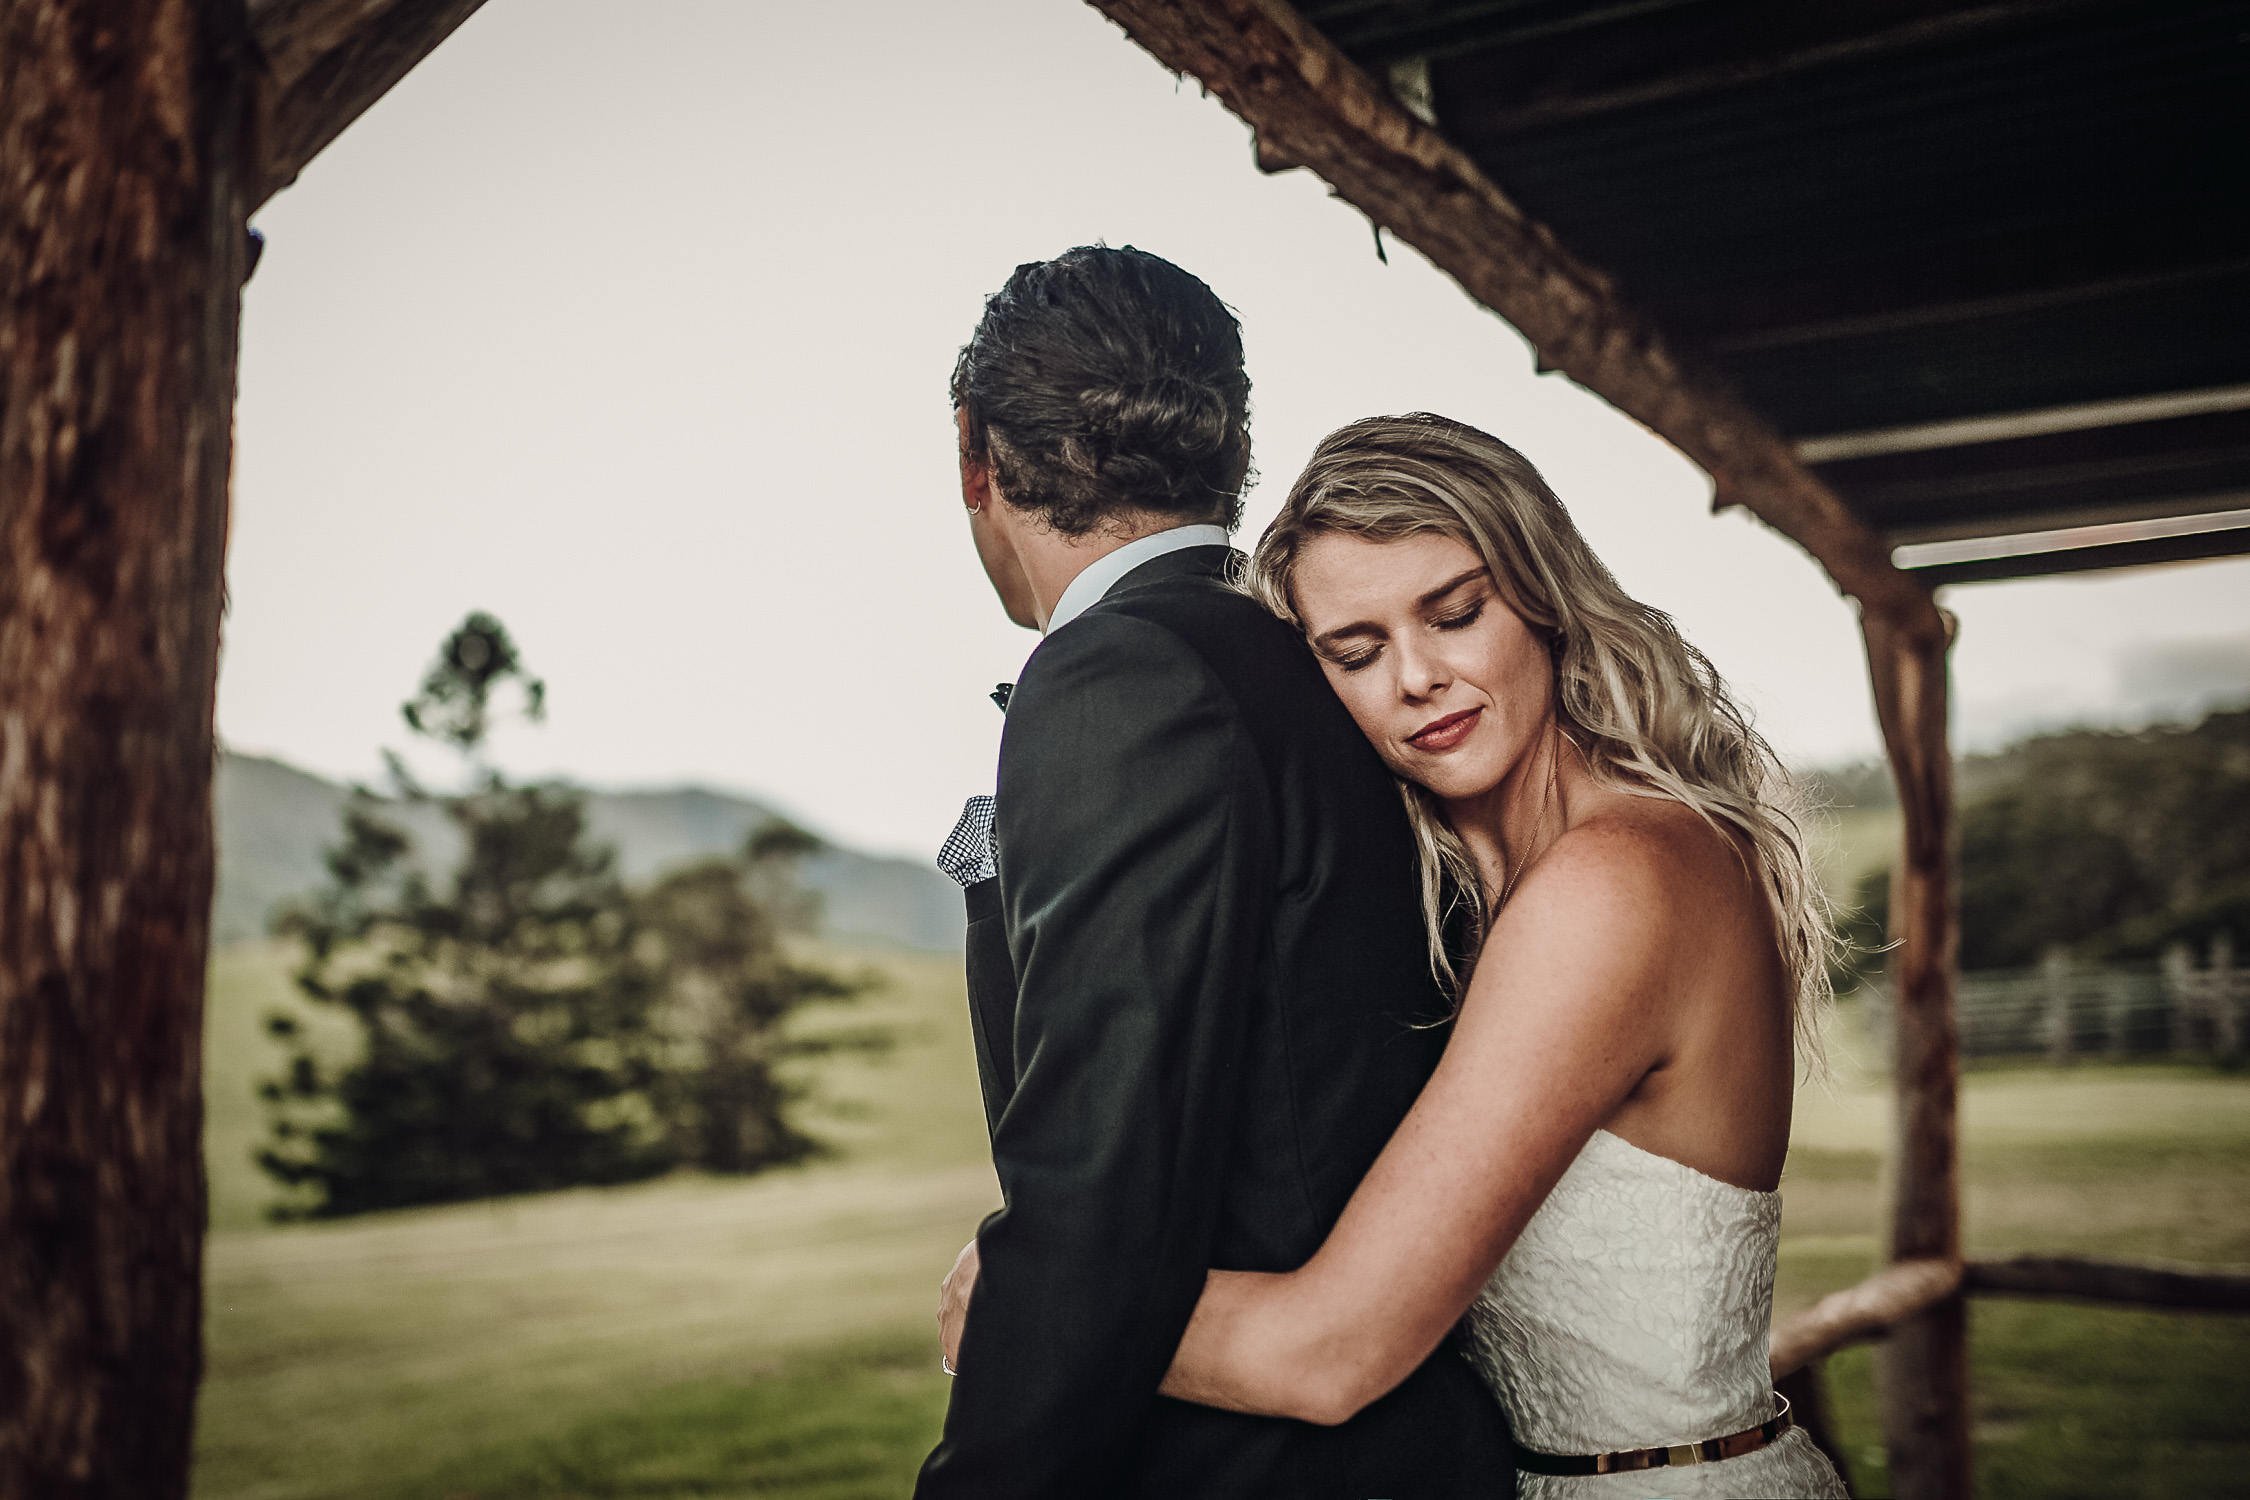 True-North-Photography-Cowbell-Creek-Gold-Coast-wedding-photographer-portrait-milking-shed-1.jpg